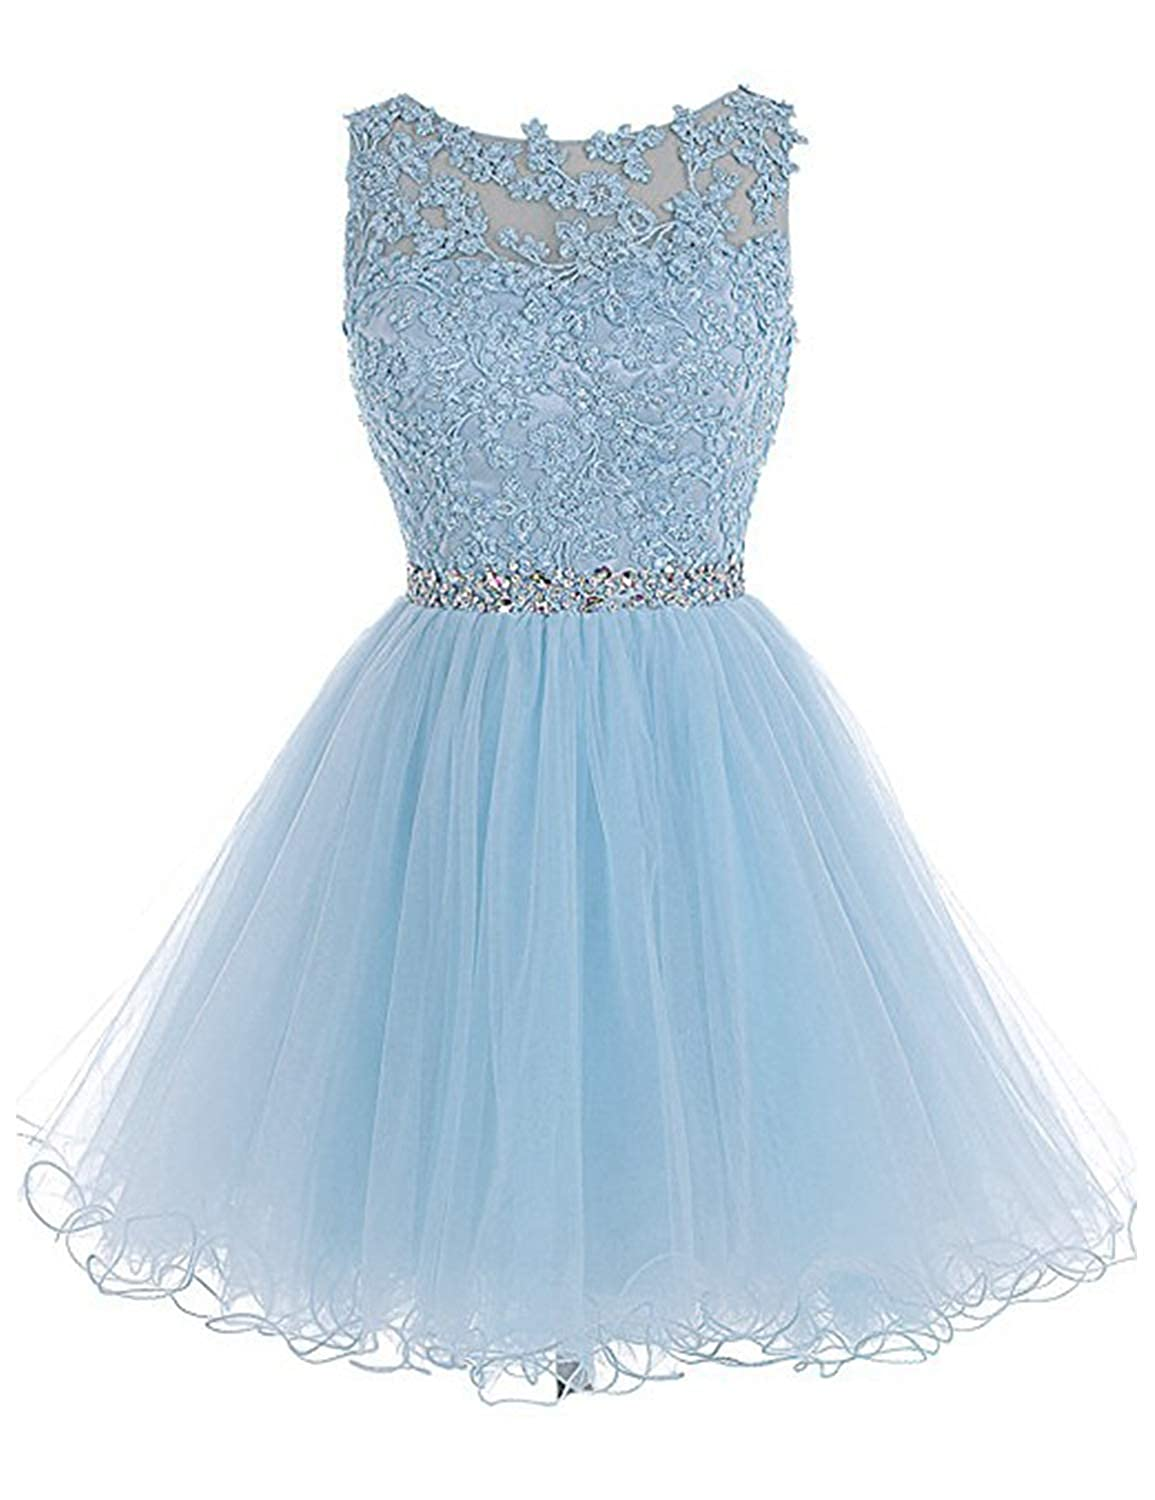 0 Light bluee Vimans Women's Short Tulle Homecoming Dresses 2018 Knee Length Lace Prom Gowns Dress448